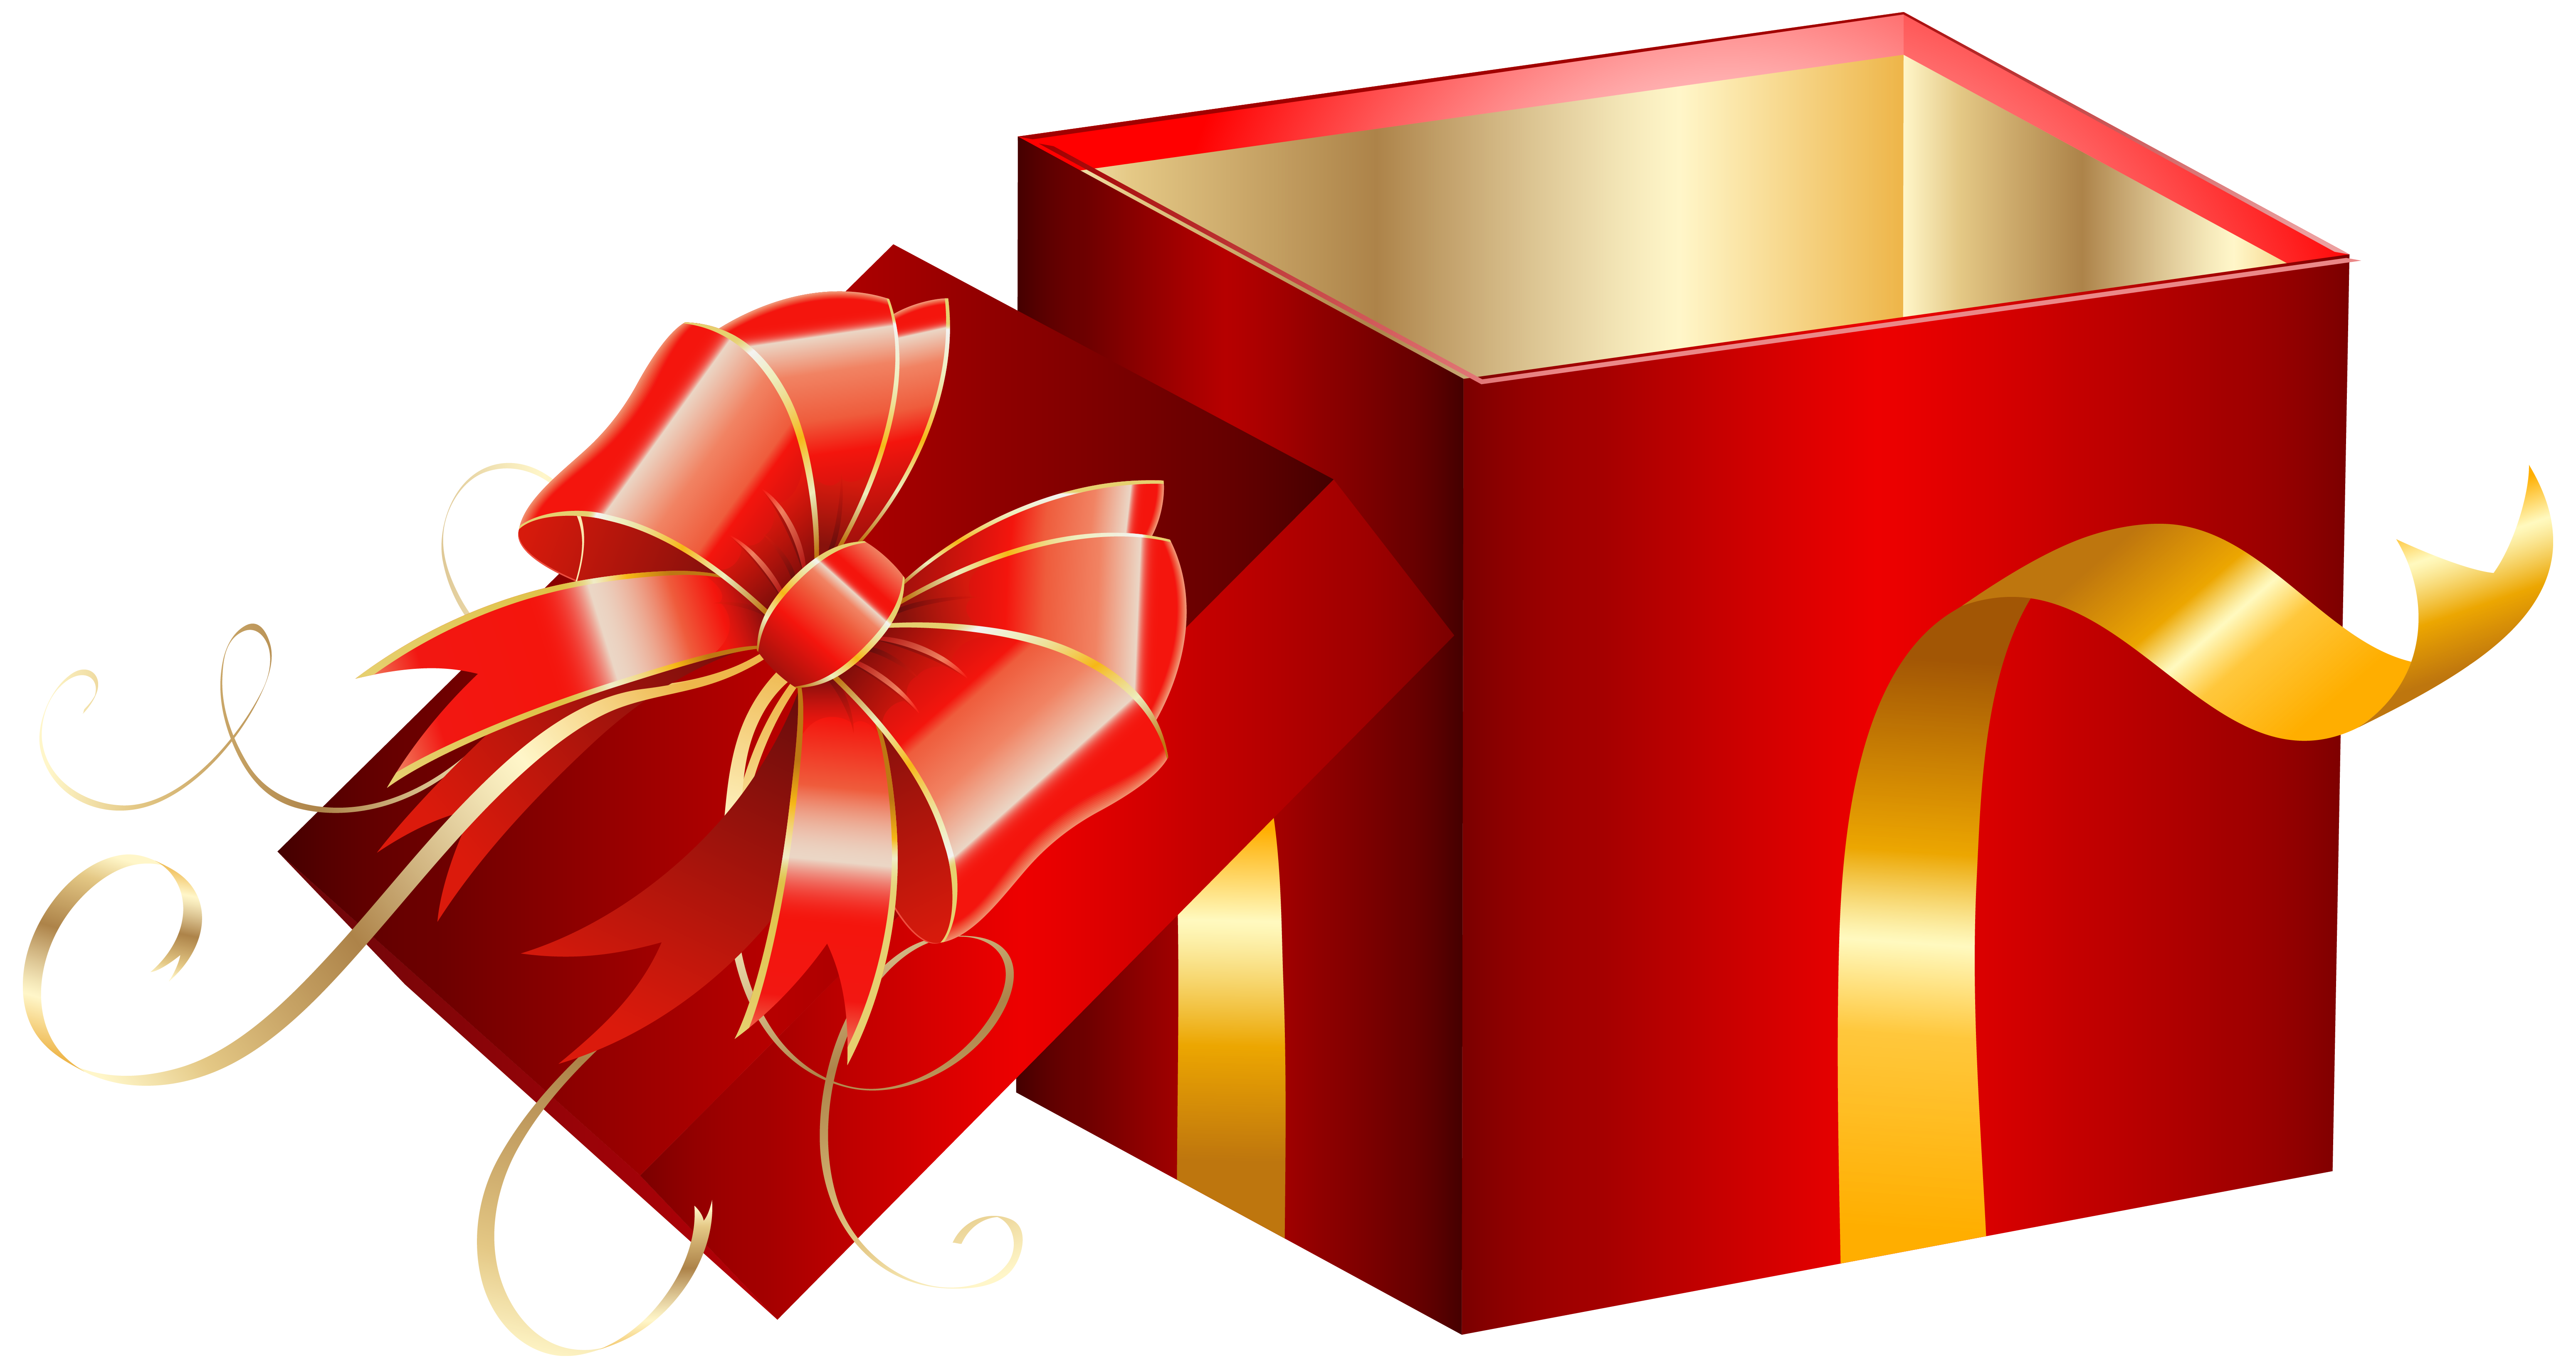 Opened Red Gift Box Png Clipart Image Gallery Yopriceville High Quality Images And Transparent Png Free Clipart Red Gift Box Gifts Red Gift